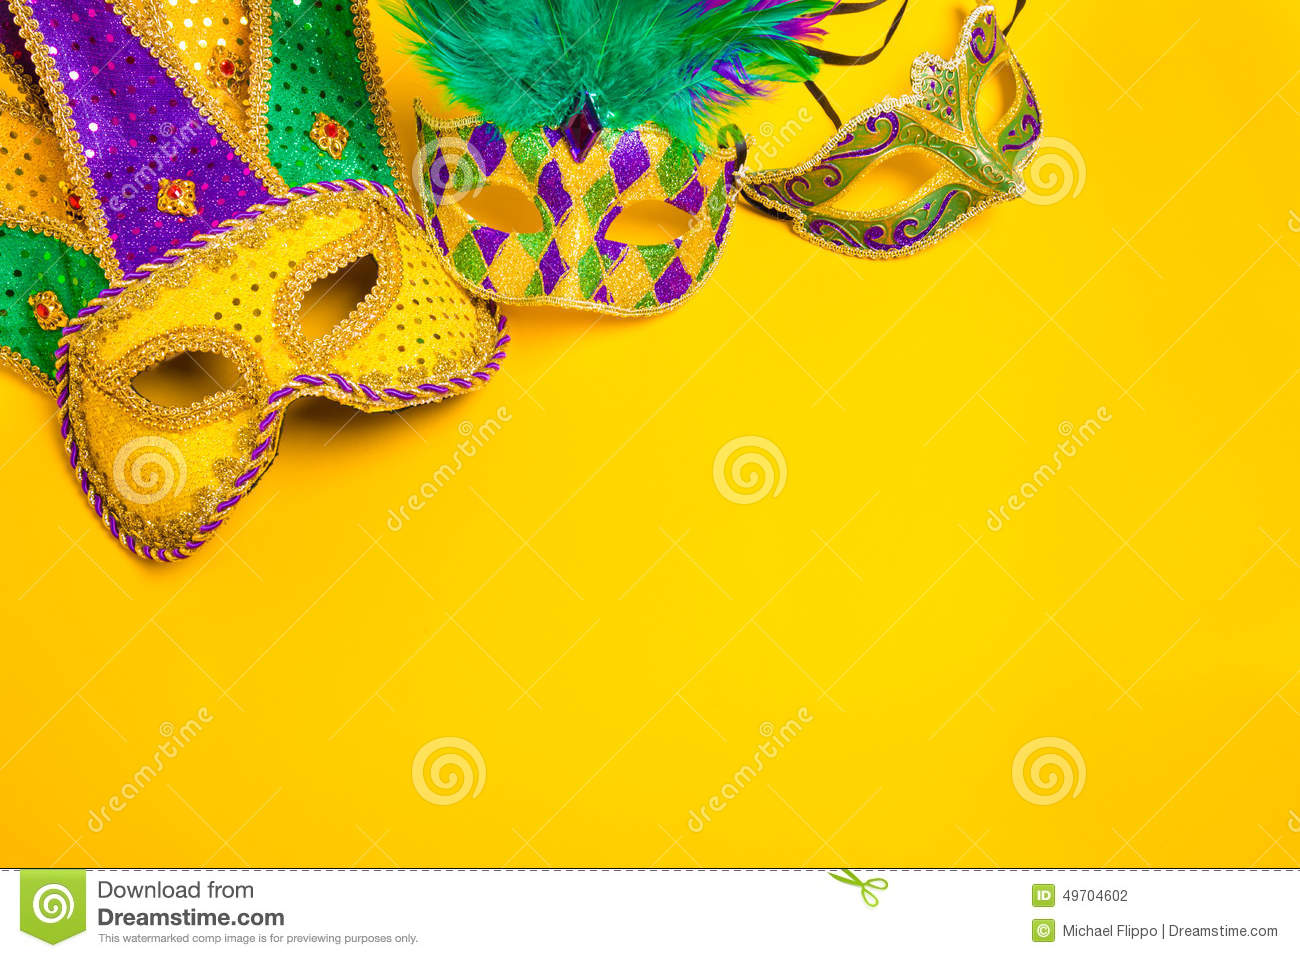 mardi gras mask on yellow background stock photo - image: 49704602, Powerpoint templates